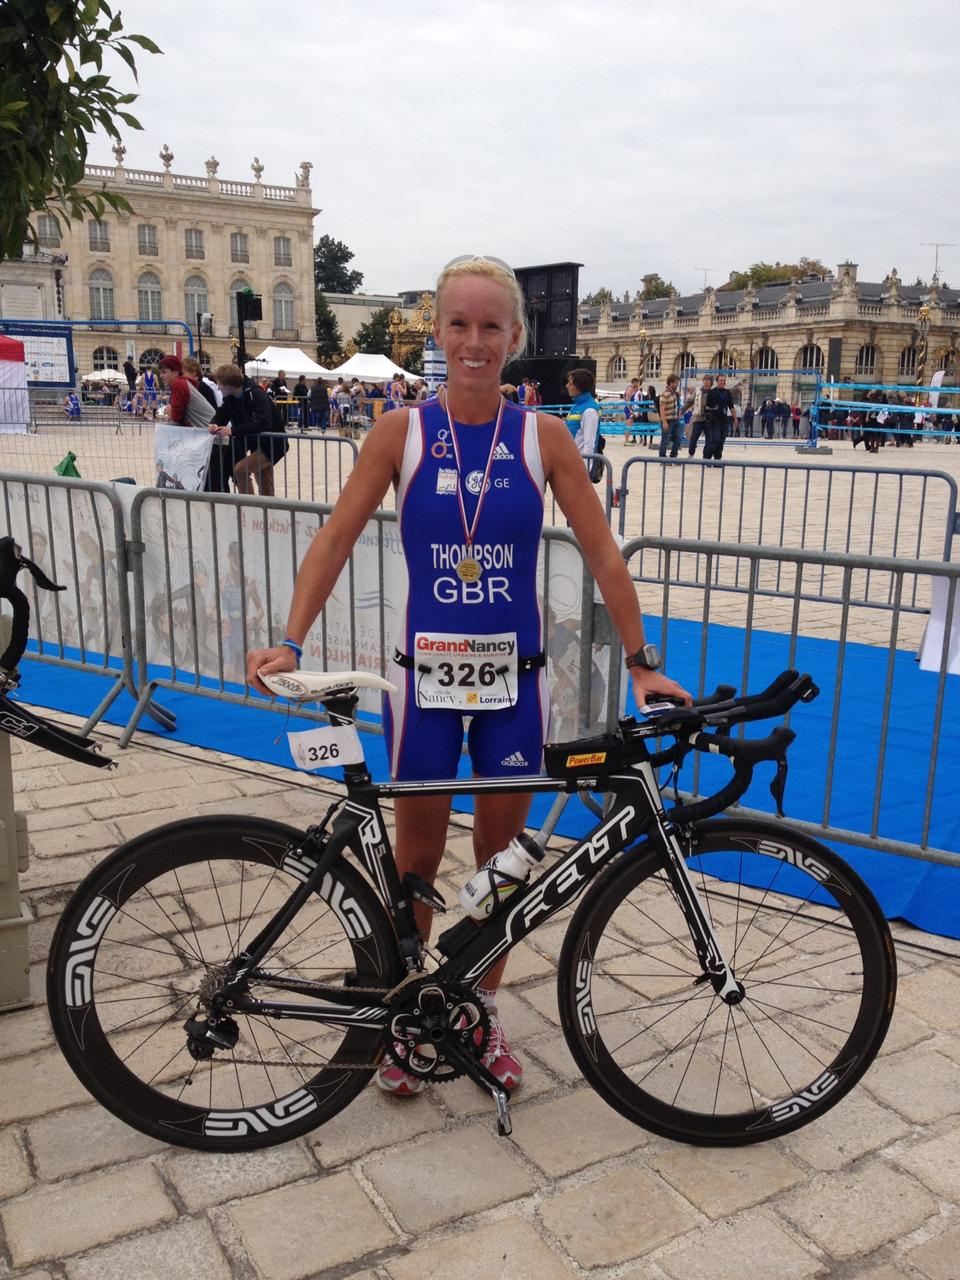 Katie with bike in GB kit